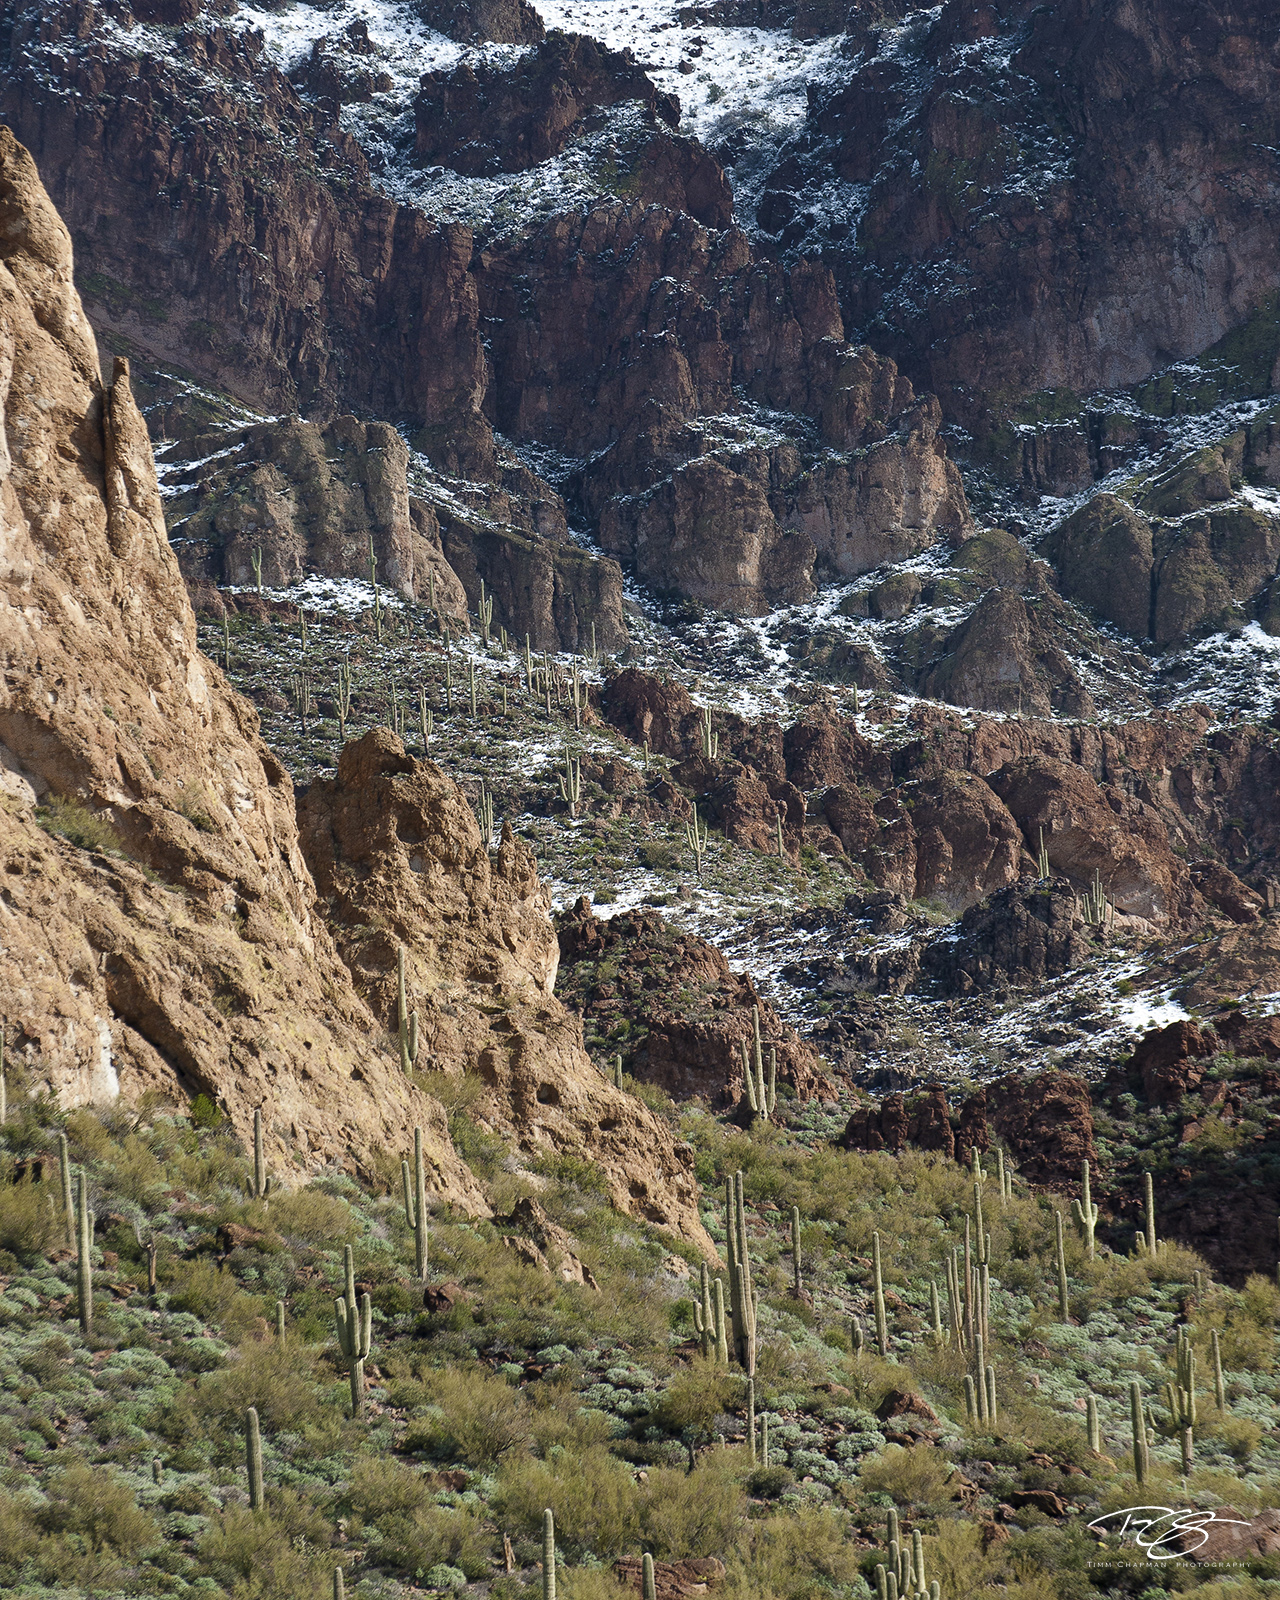 Snow blankets the upper reaches of the Superstition wilderness along the Apache Trail